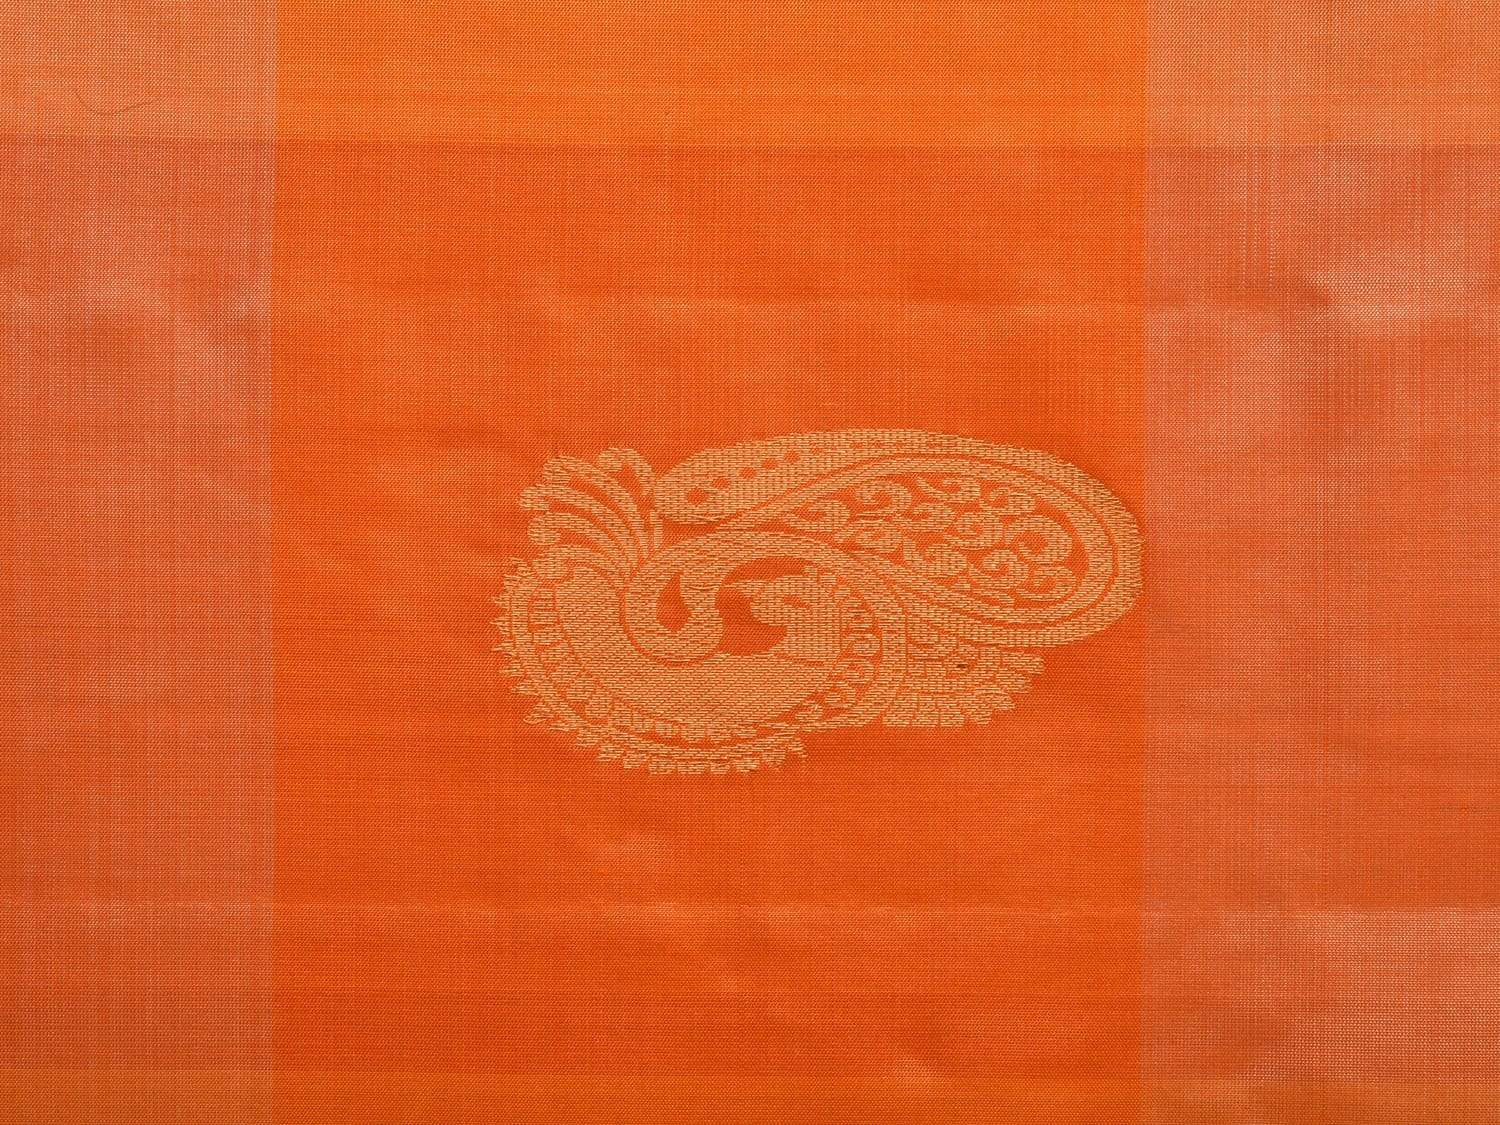 Orange Kanchipuram Silk Handloom Saree with Checks and Peacock Buta Design k0467